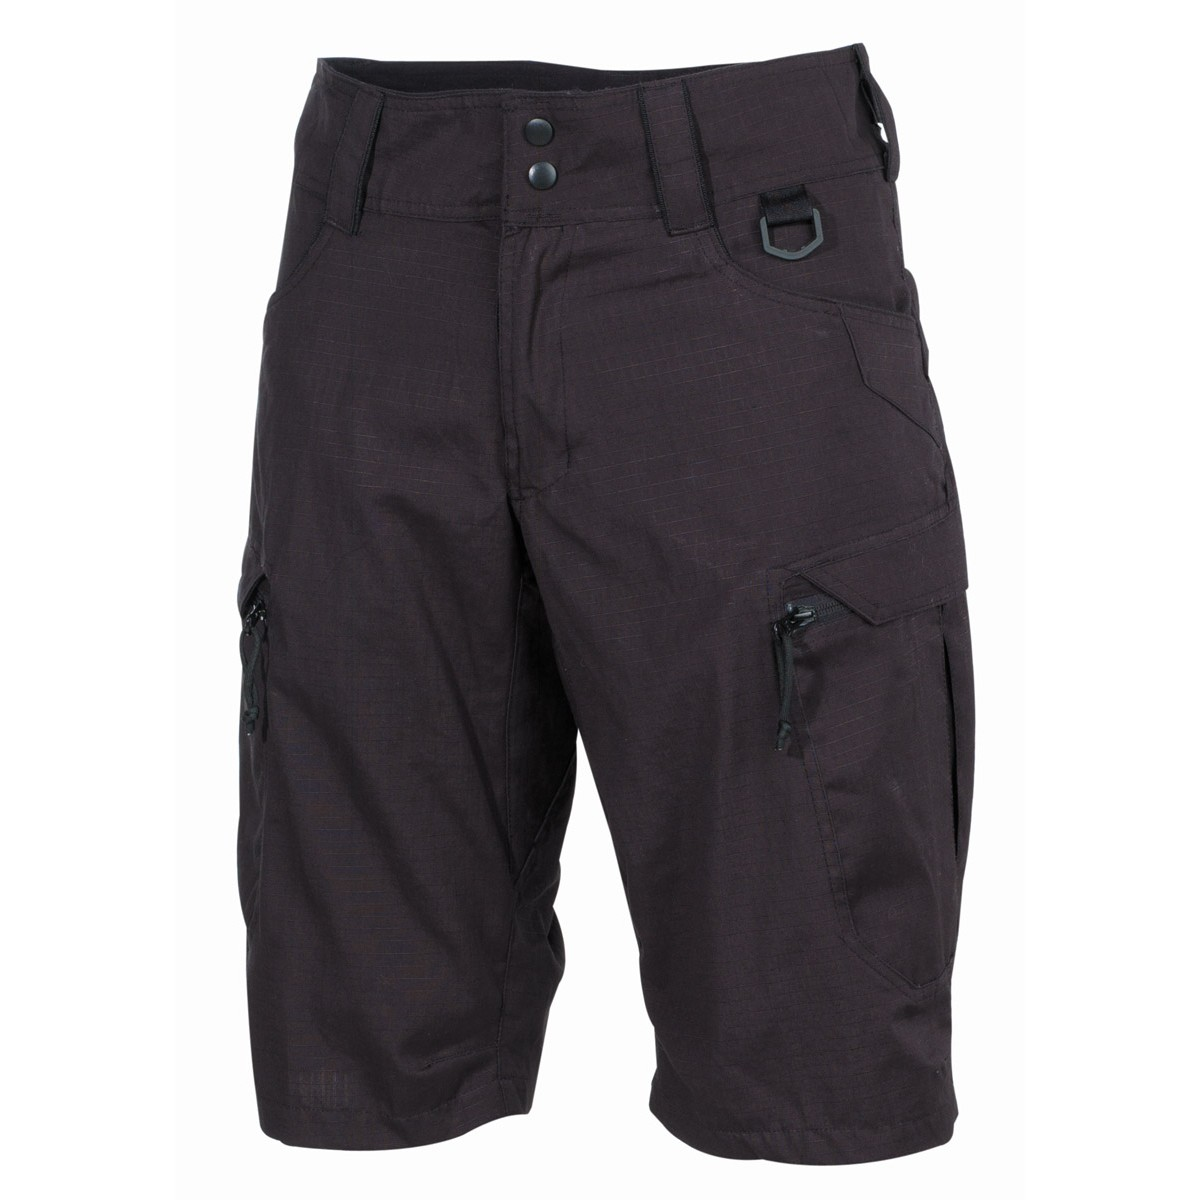 "Professional Tactical Military Battle Army Shorts ""Defense"" Rip Stop - Black"